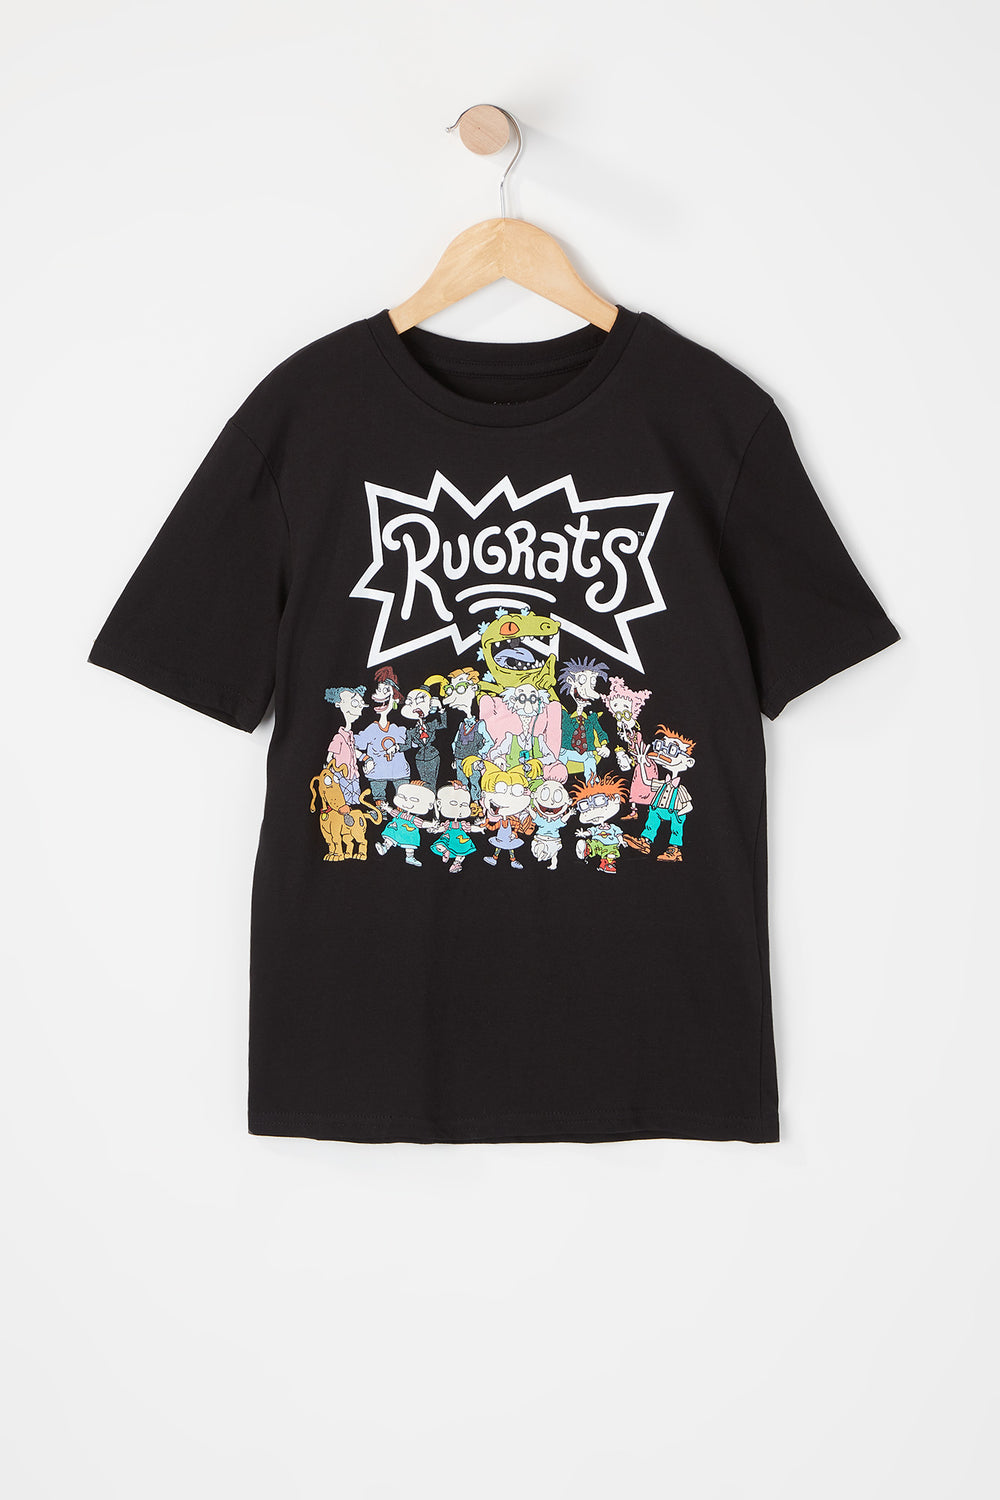 Youth Rugrats T-Shirt Black